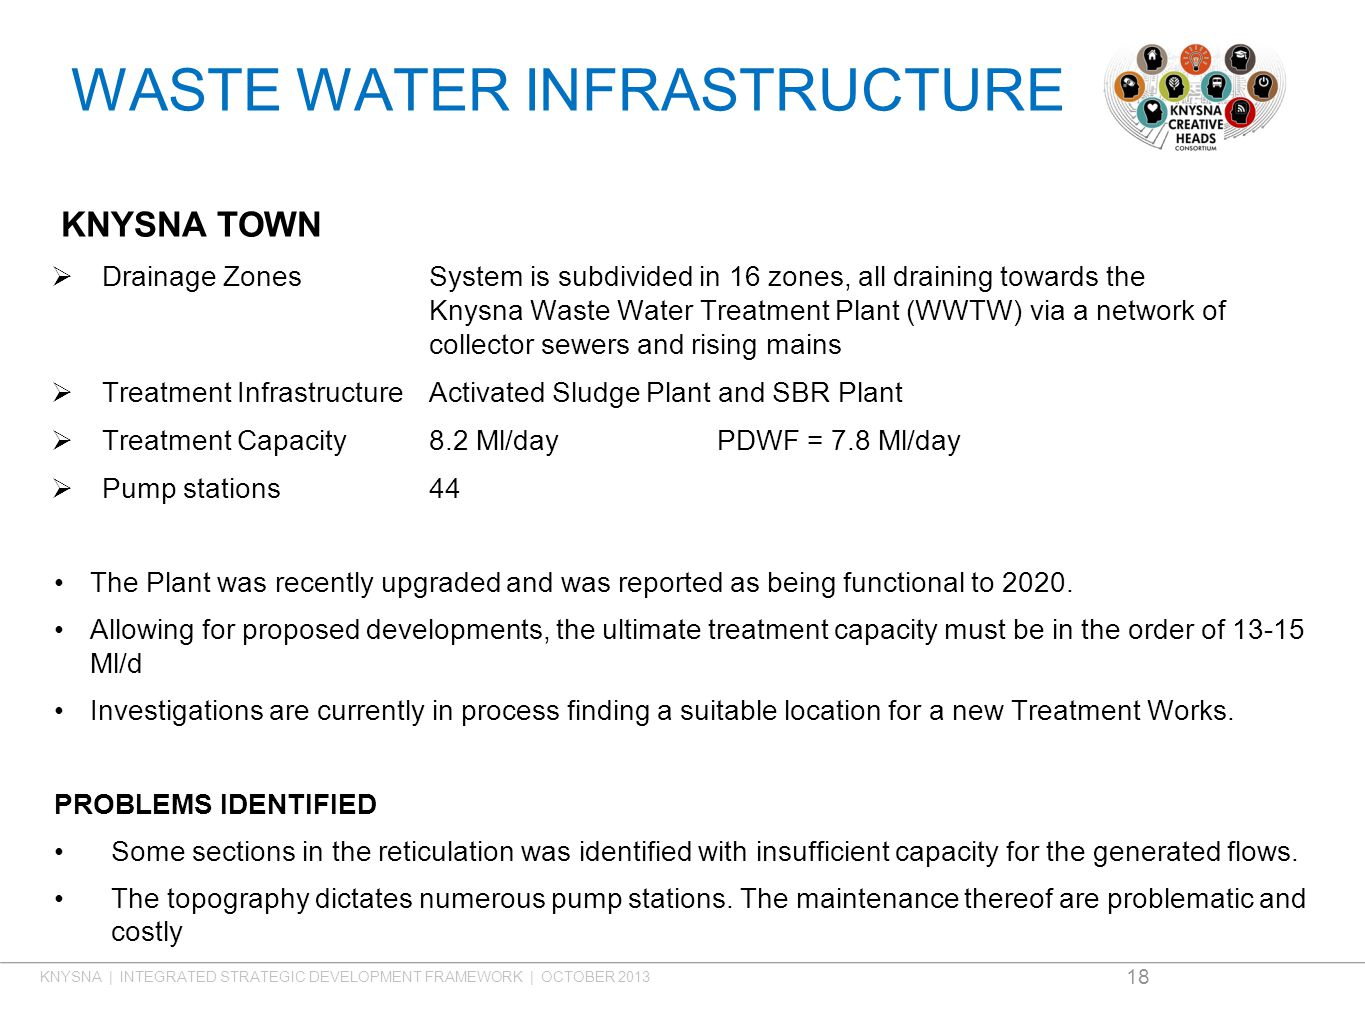 WASTE WATER INFRASTRUCTURE KNYSNA TOWN  Drainage ZonesSystem is subdivided in 16 zones, all draining towards the Knysna Waste Water Treatment Plant (WWTW) via a network of collector sewers and rising mains  Treatment InfrastructureActivated Sludge Plant and SBR Plant  Treatment Capacity8.2 Ml/dayPDWF = 7.8 Ml/day  Pump stations44 The Plant was recently upgraded and was reported as being functional to 2020.